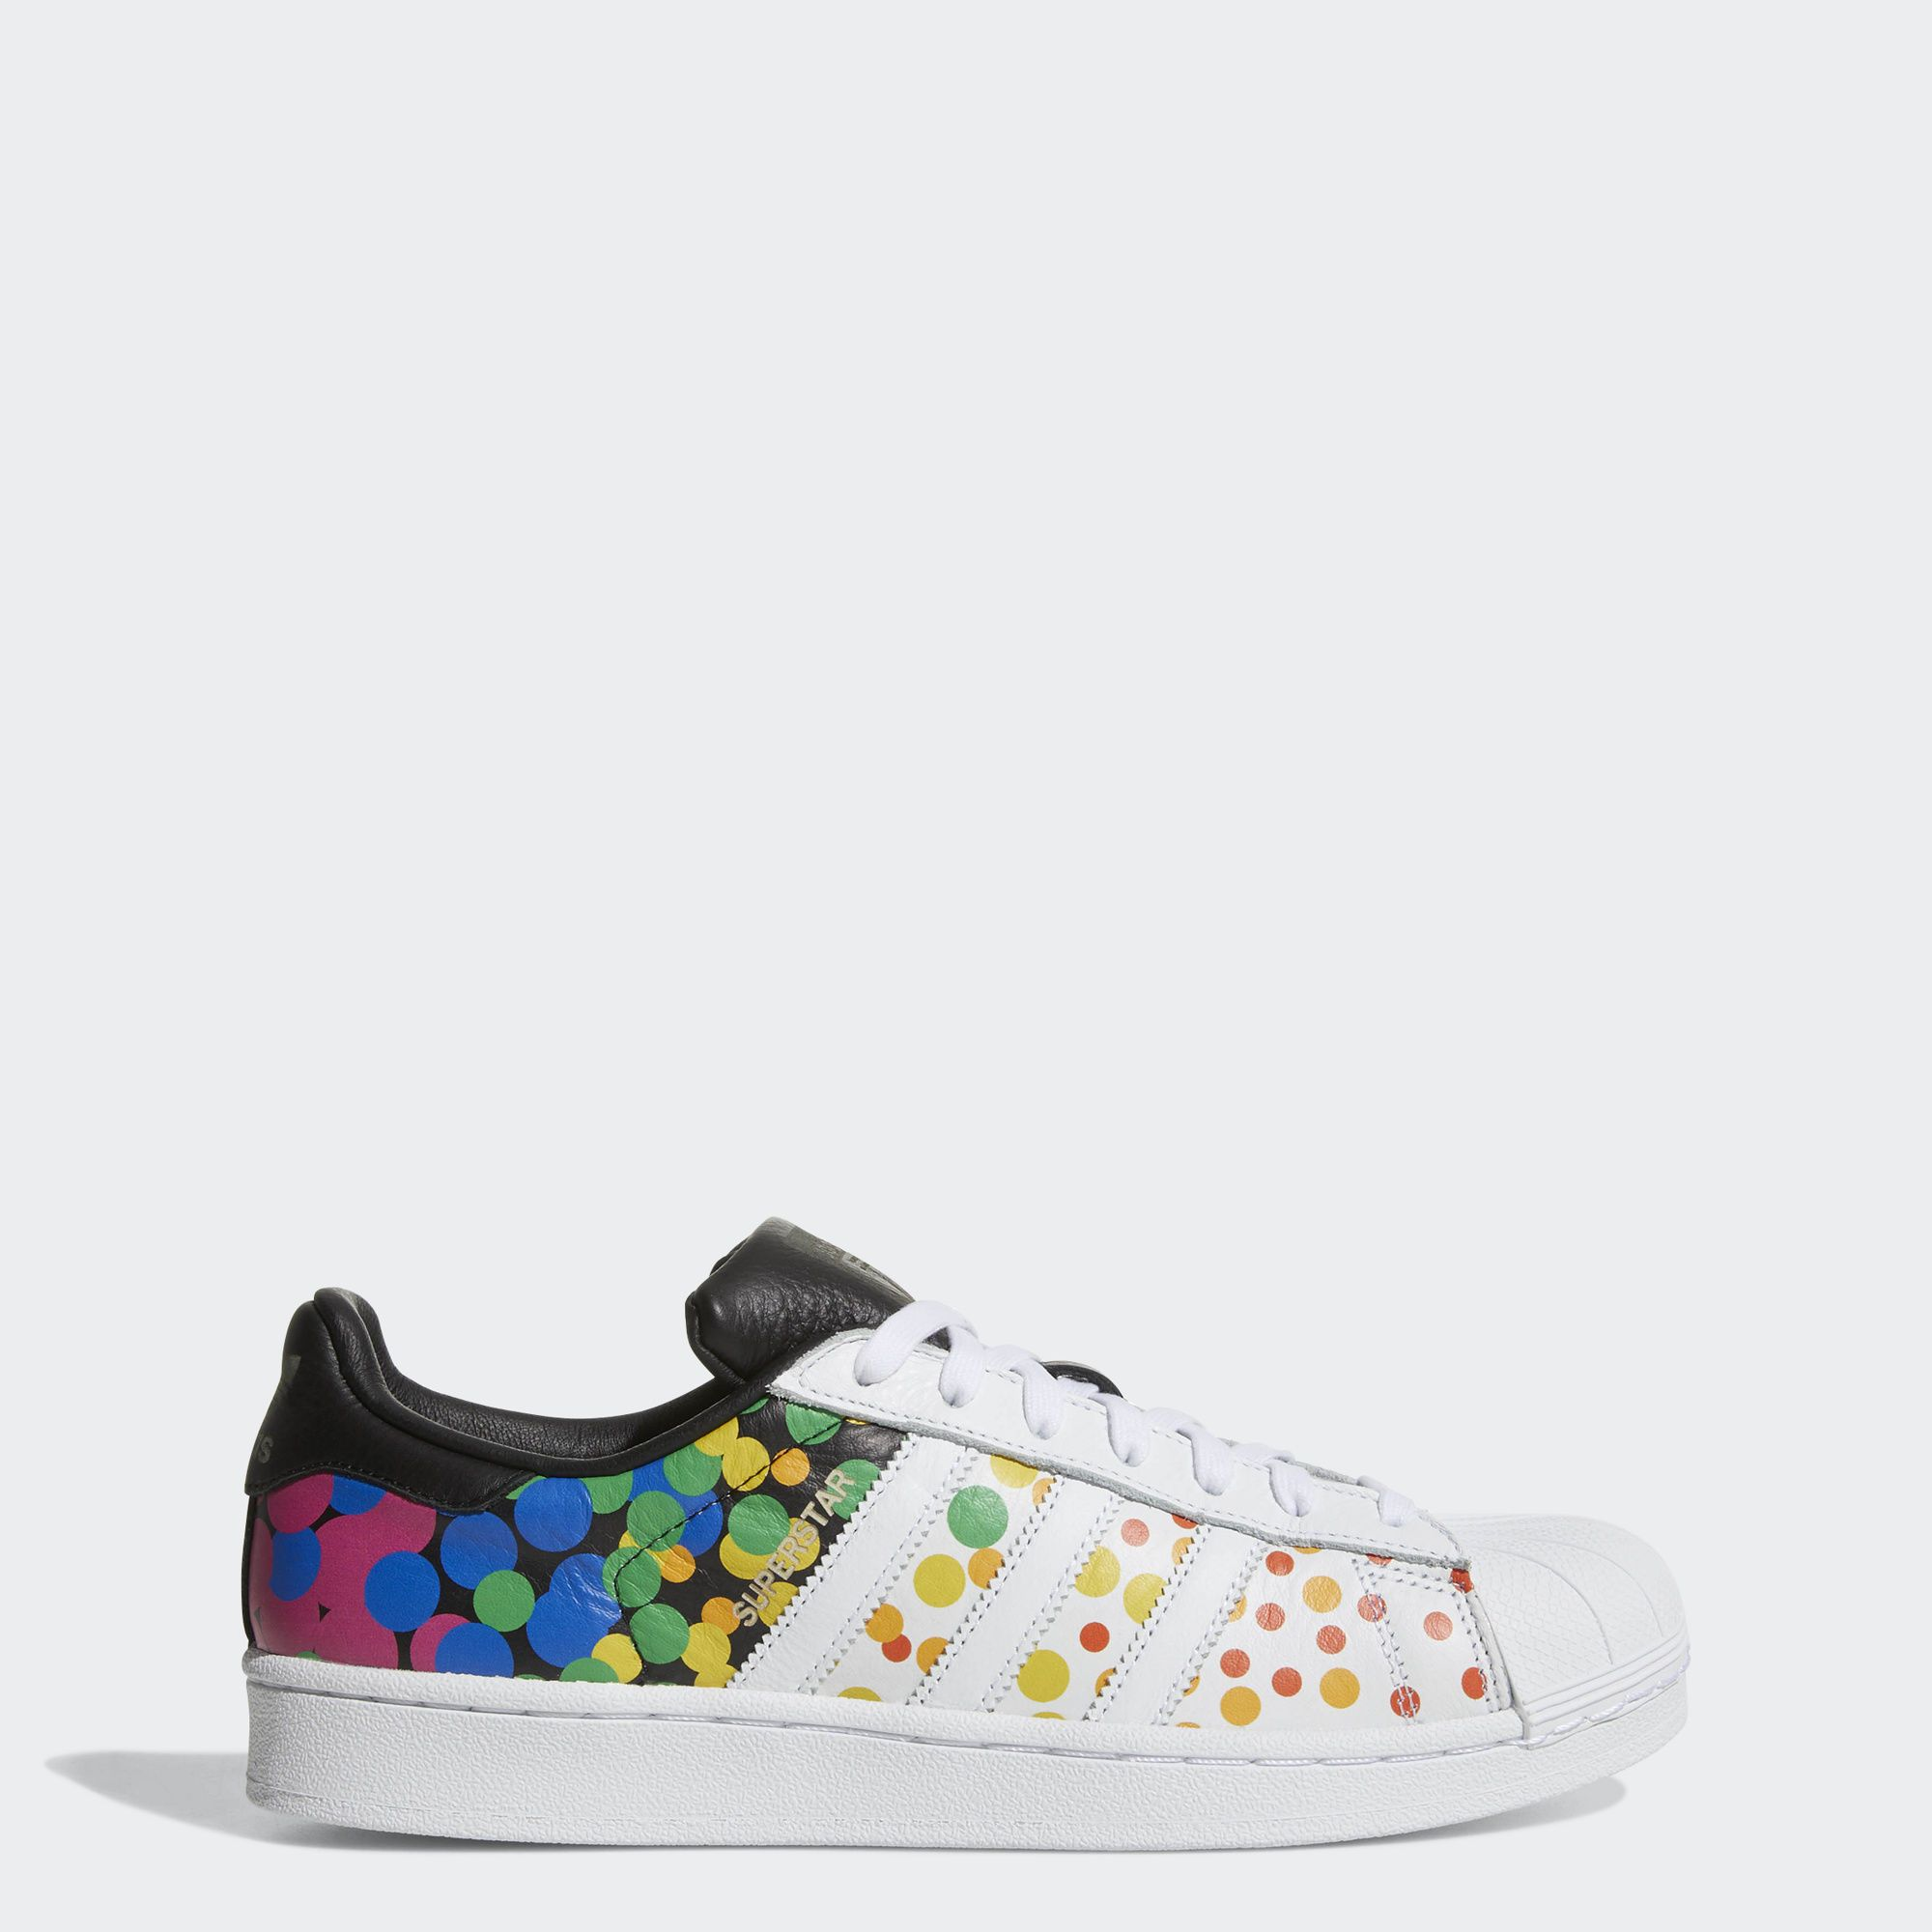 save off 7f028 516a1 adidas-Pride-Pack-Superstar-Shoes-Men-039-s | BEAUTIFUL SHOES ...